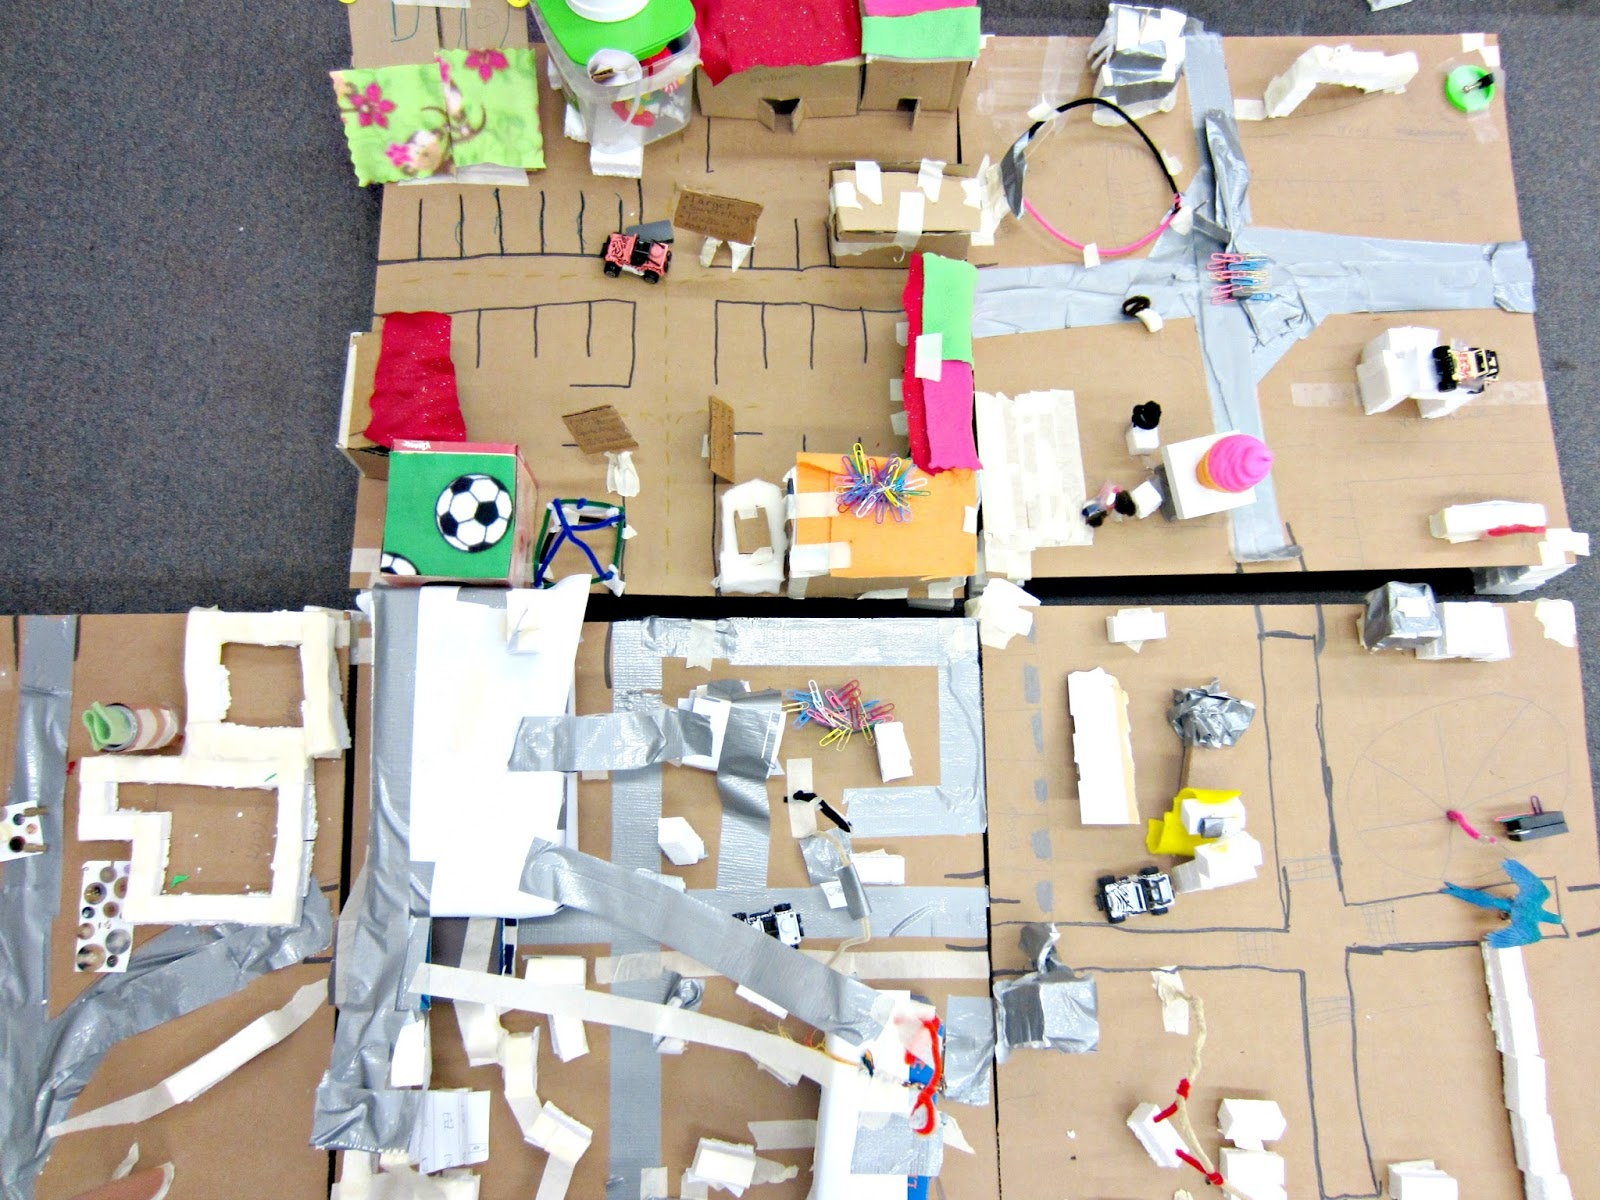 Get kids to think like an inventor by letting them build with recycled materials